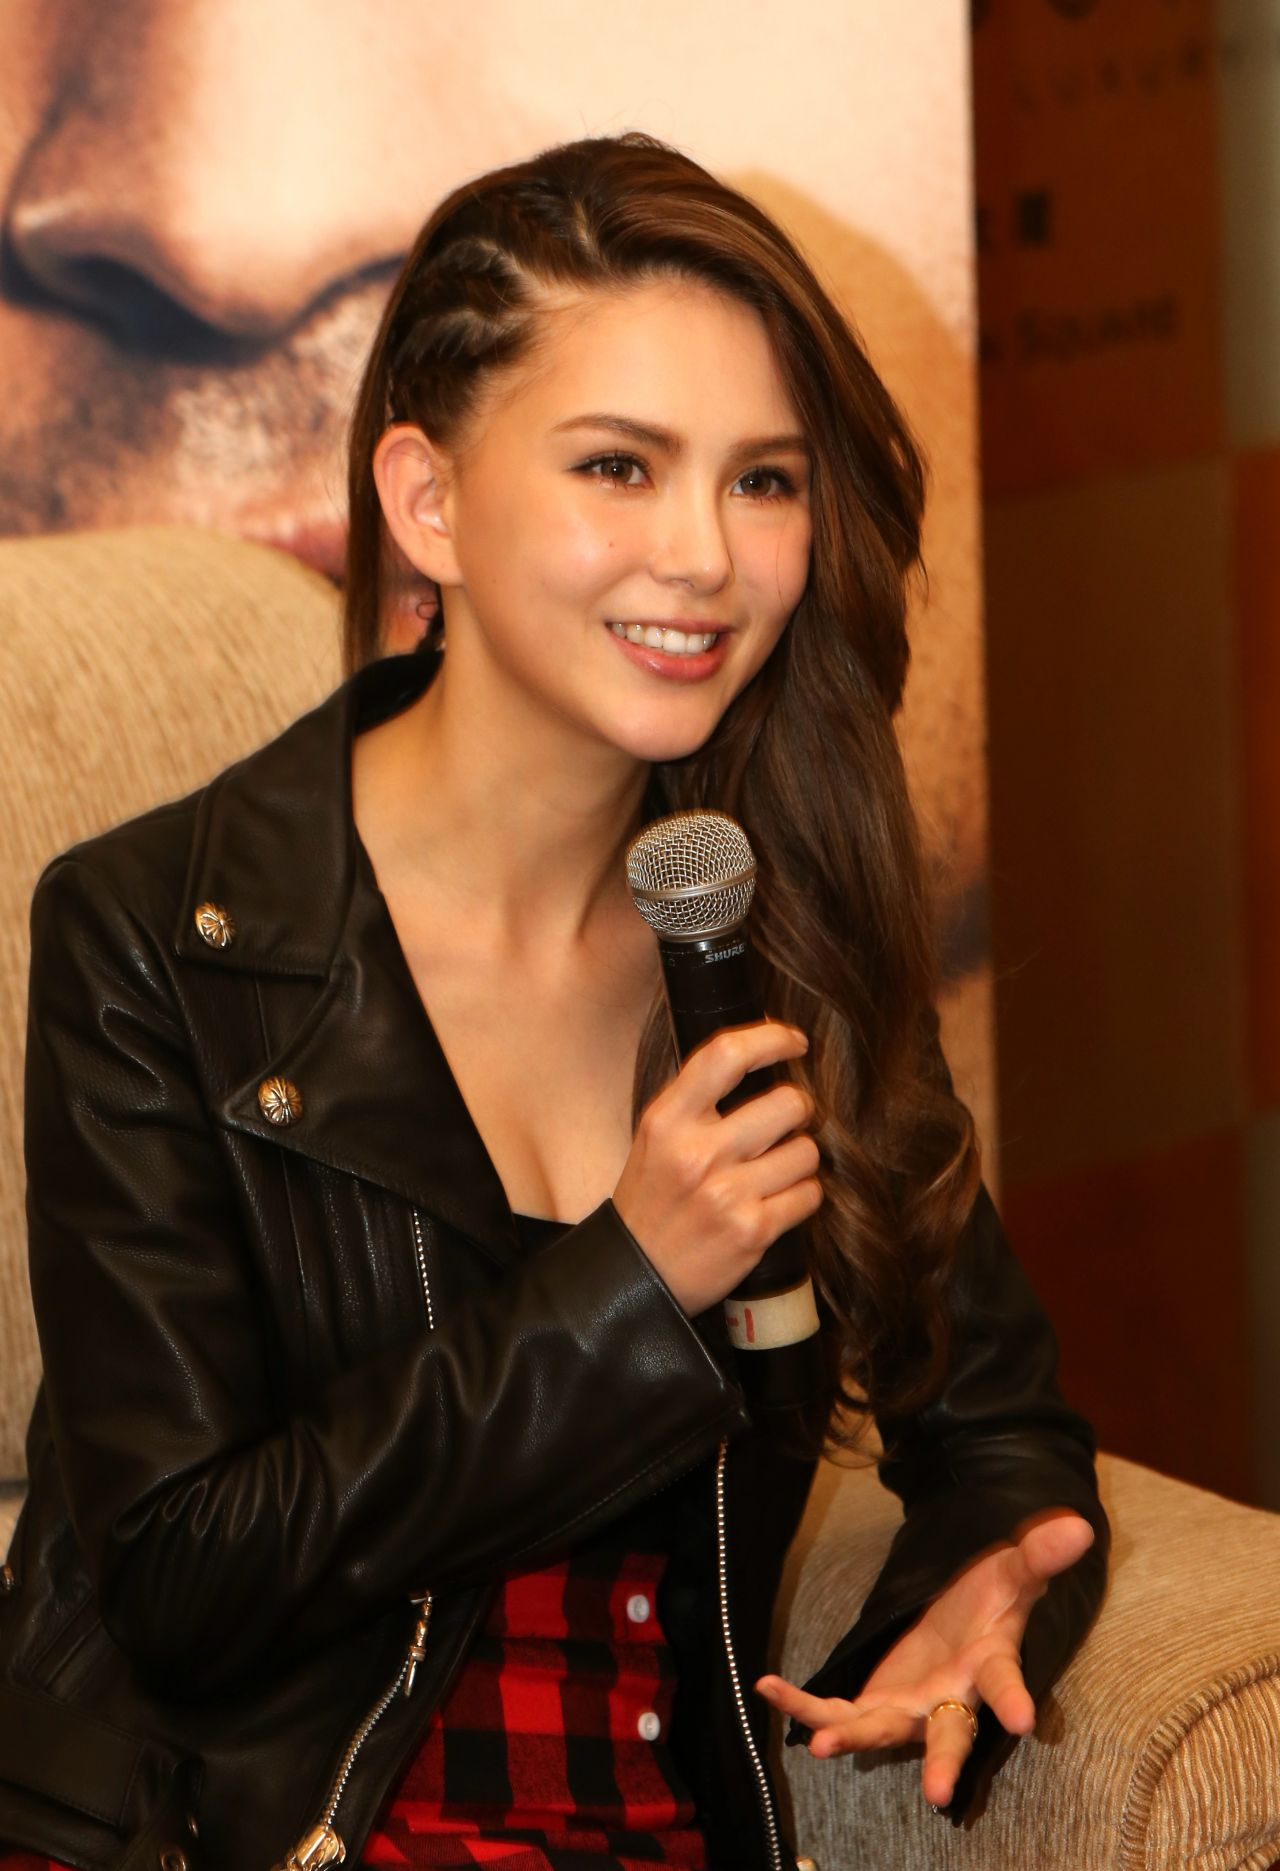 Hannah Quinlivan Quot S M A R T Chase Quot Photocall In Xi An China 09 14 2017